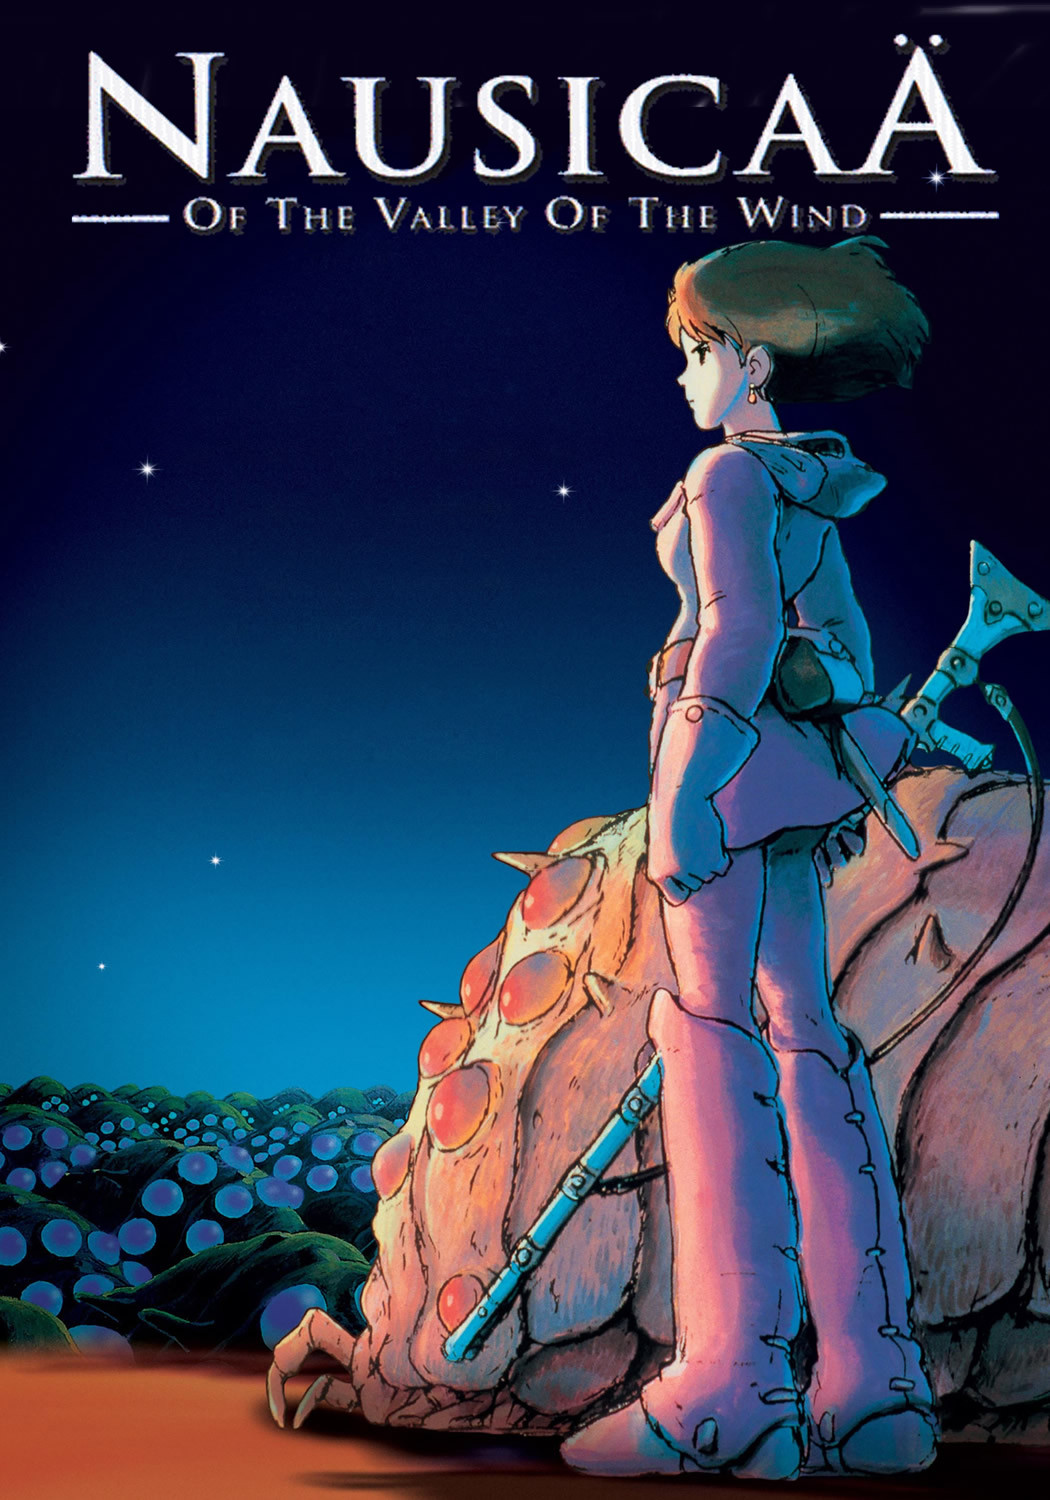 Nausicaa of the Valley of the Wind poster.